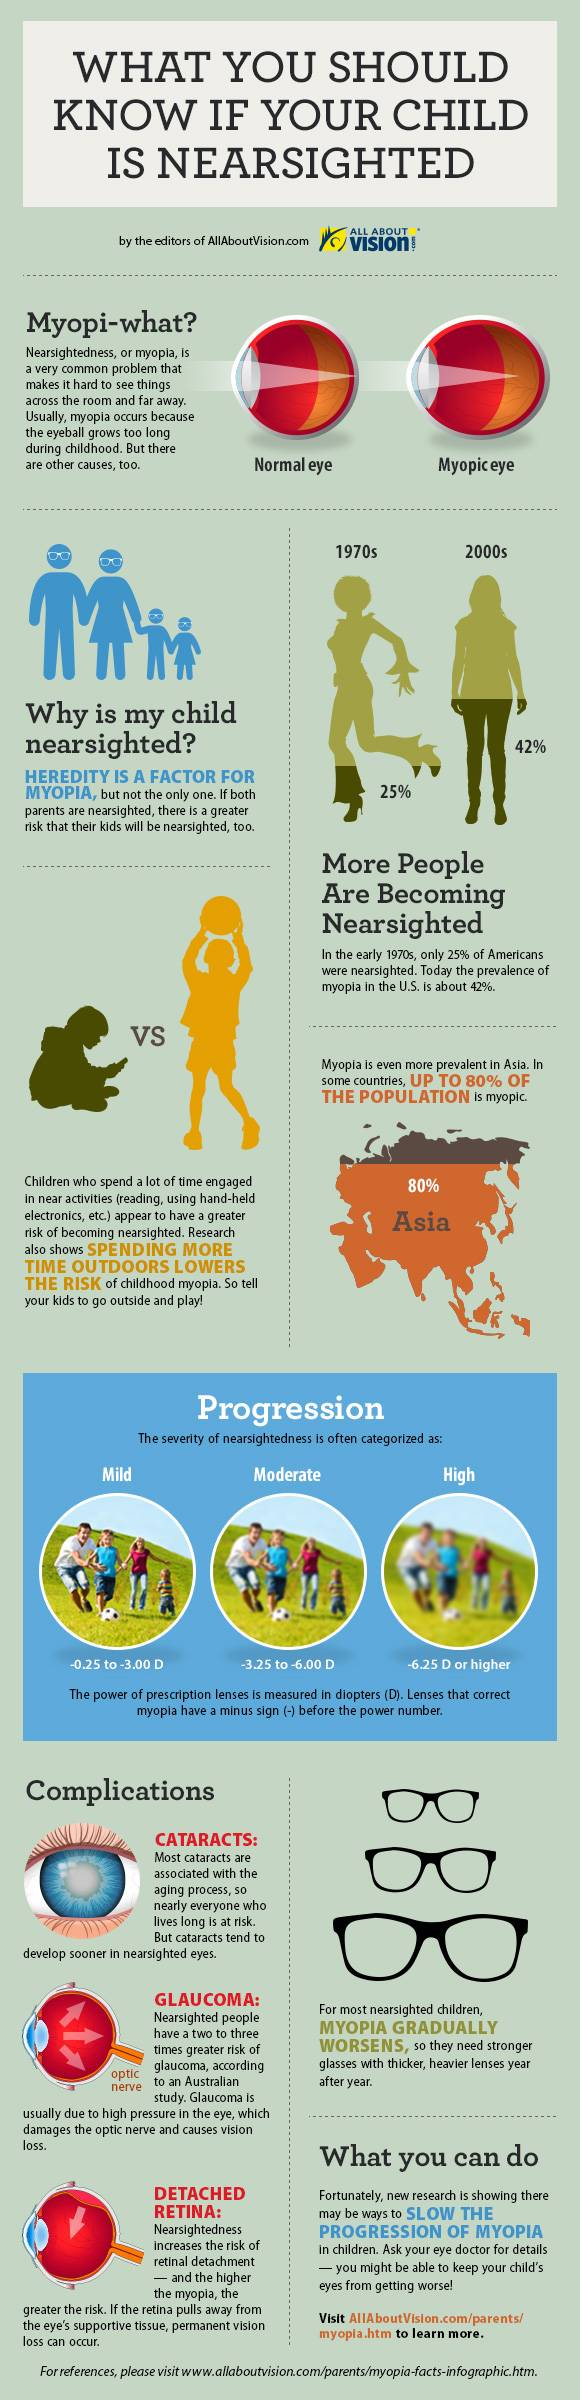 myopia-facts-infographic-580x2400